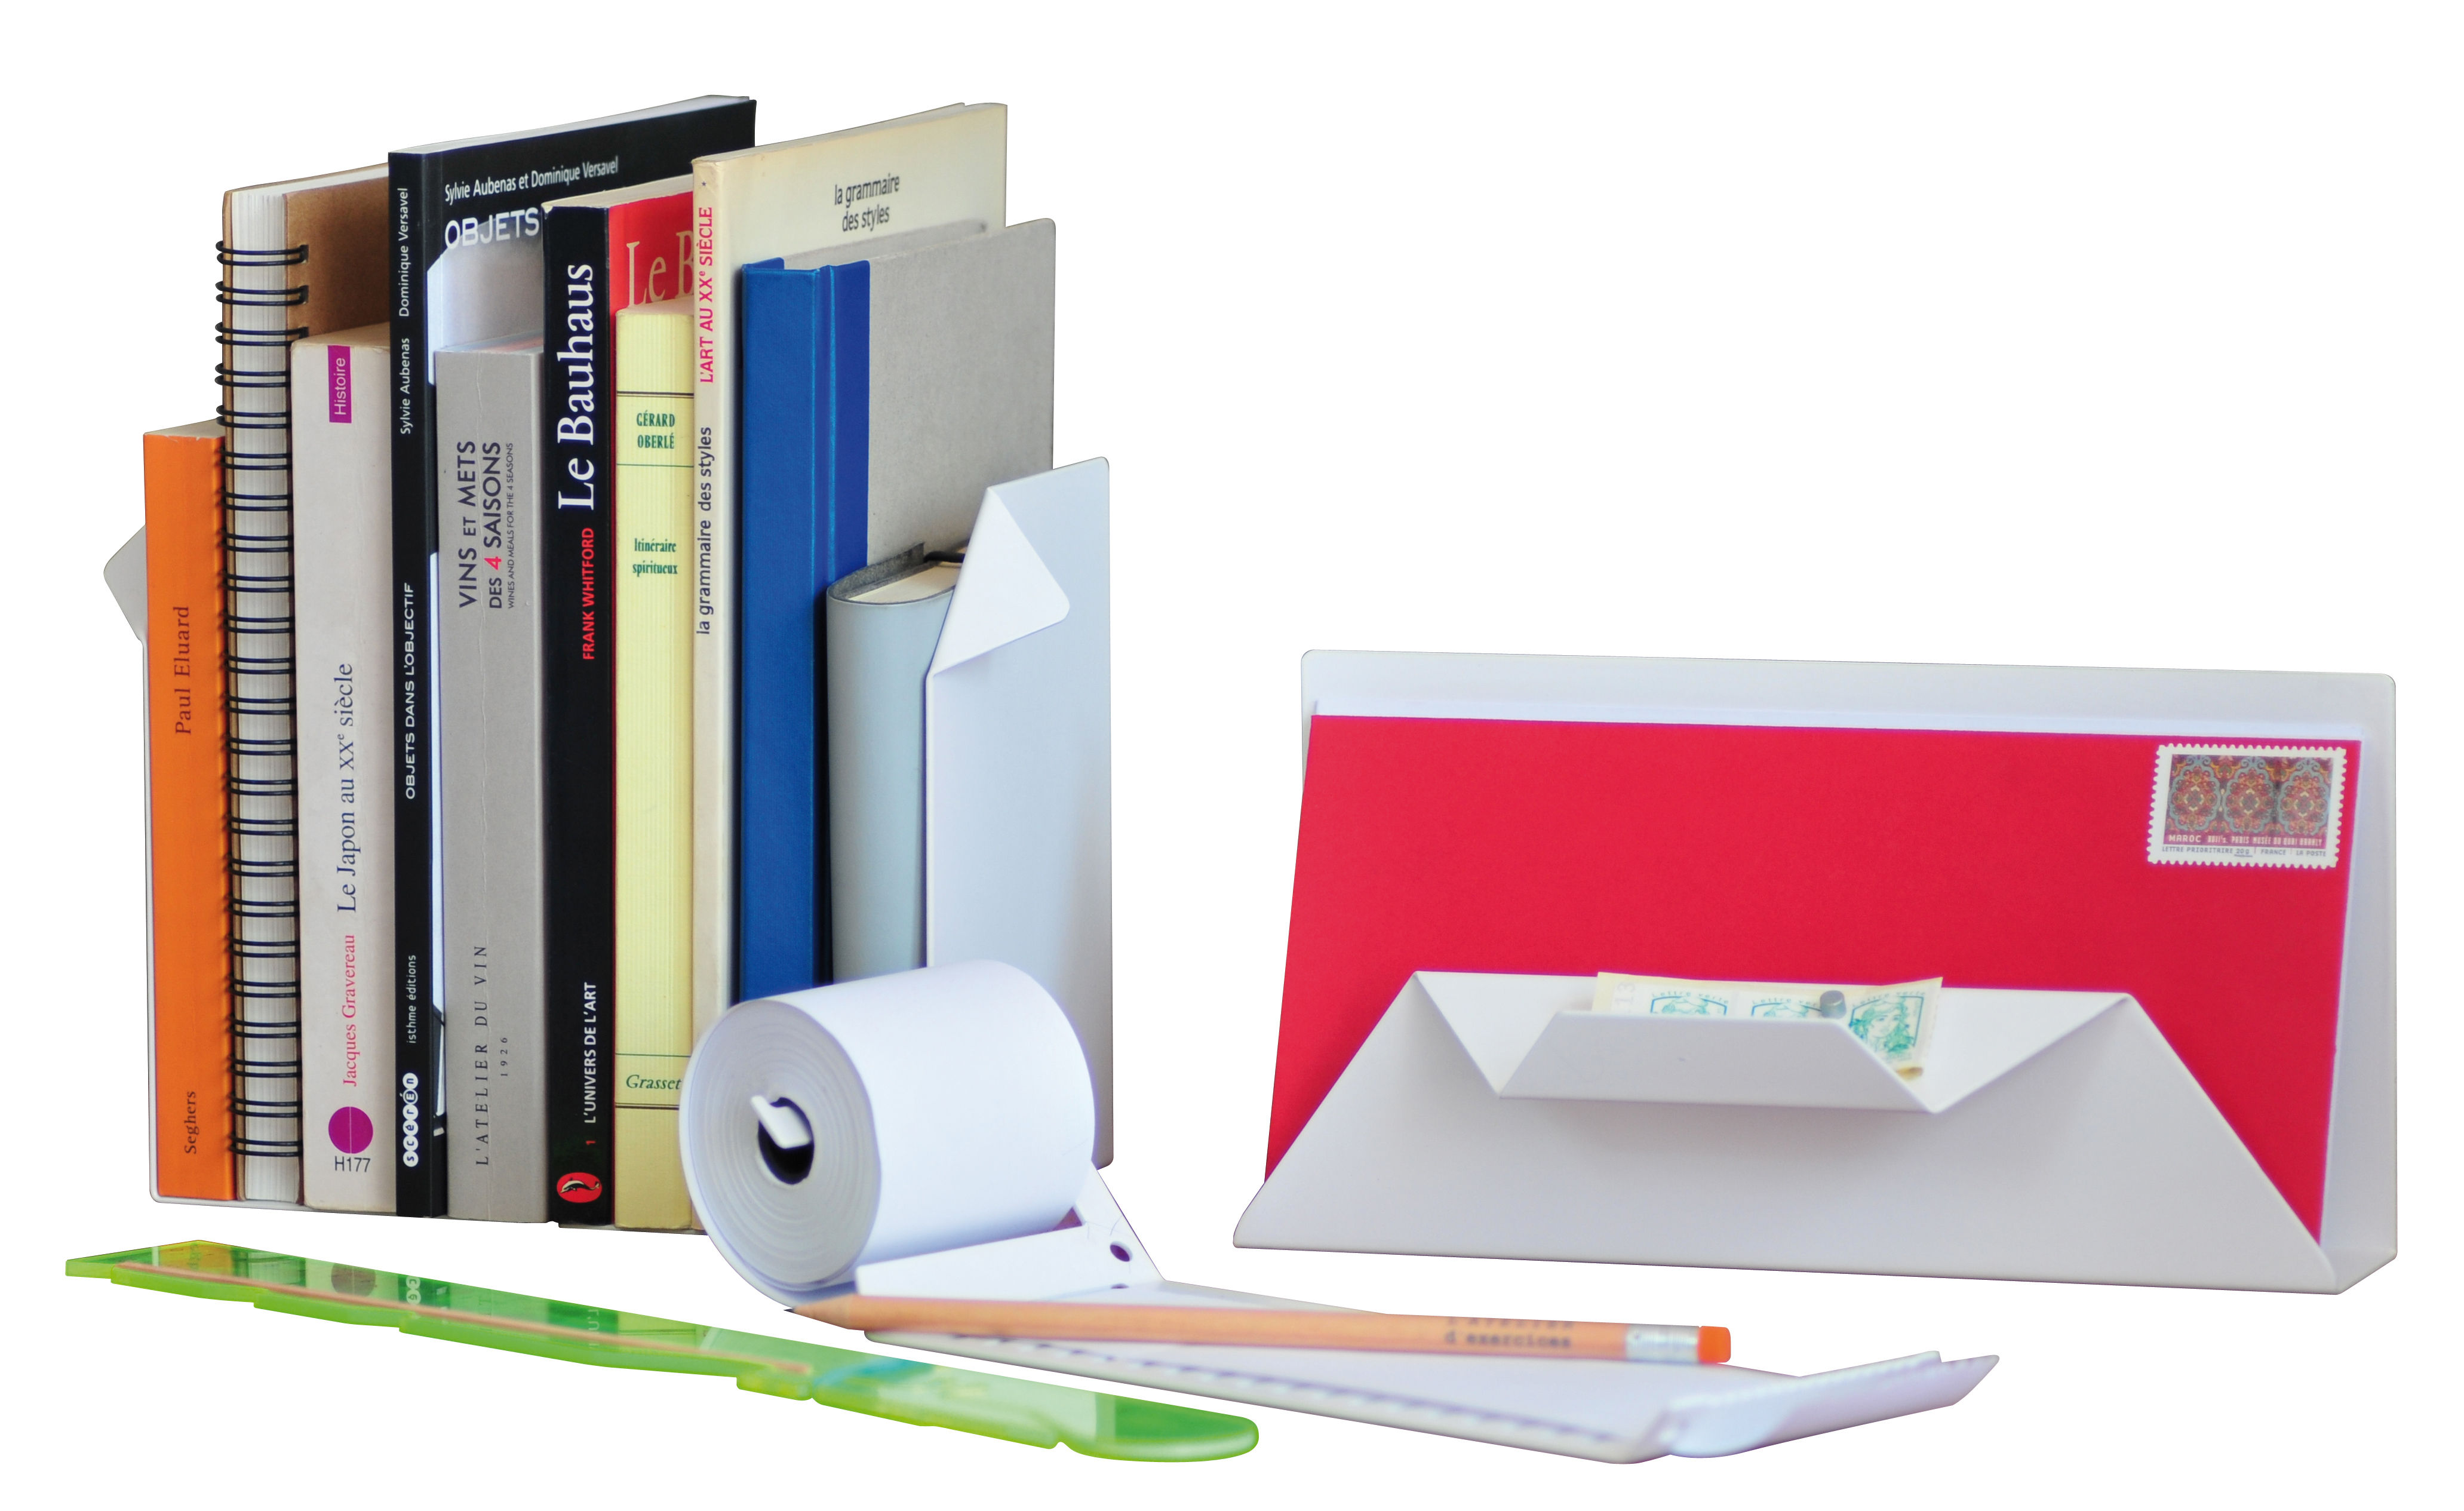 Accessories - Desk & Office Accessories - Office Set - 5 desk accessories by L'atelier d'exercices - White / yellow - Painted steel, Plastic material